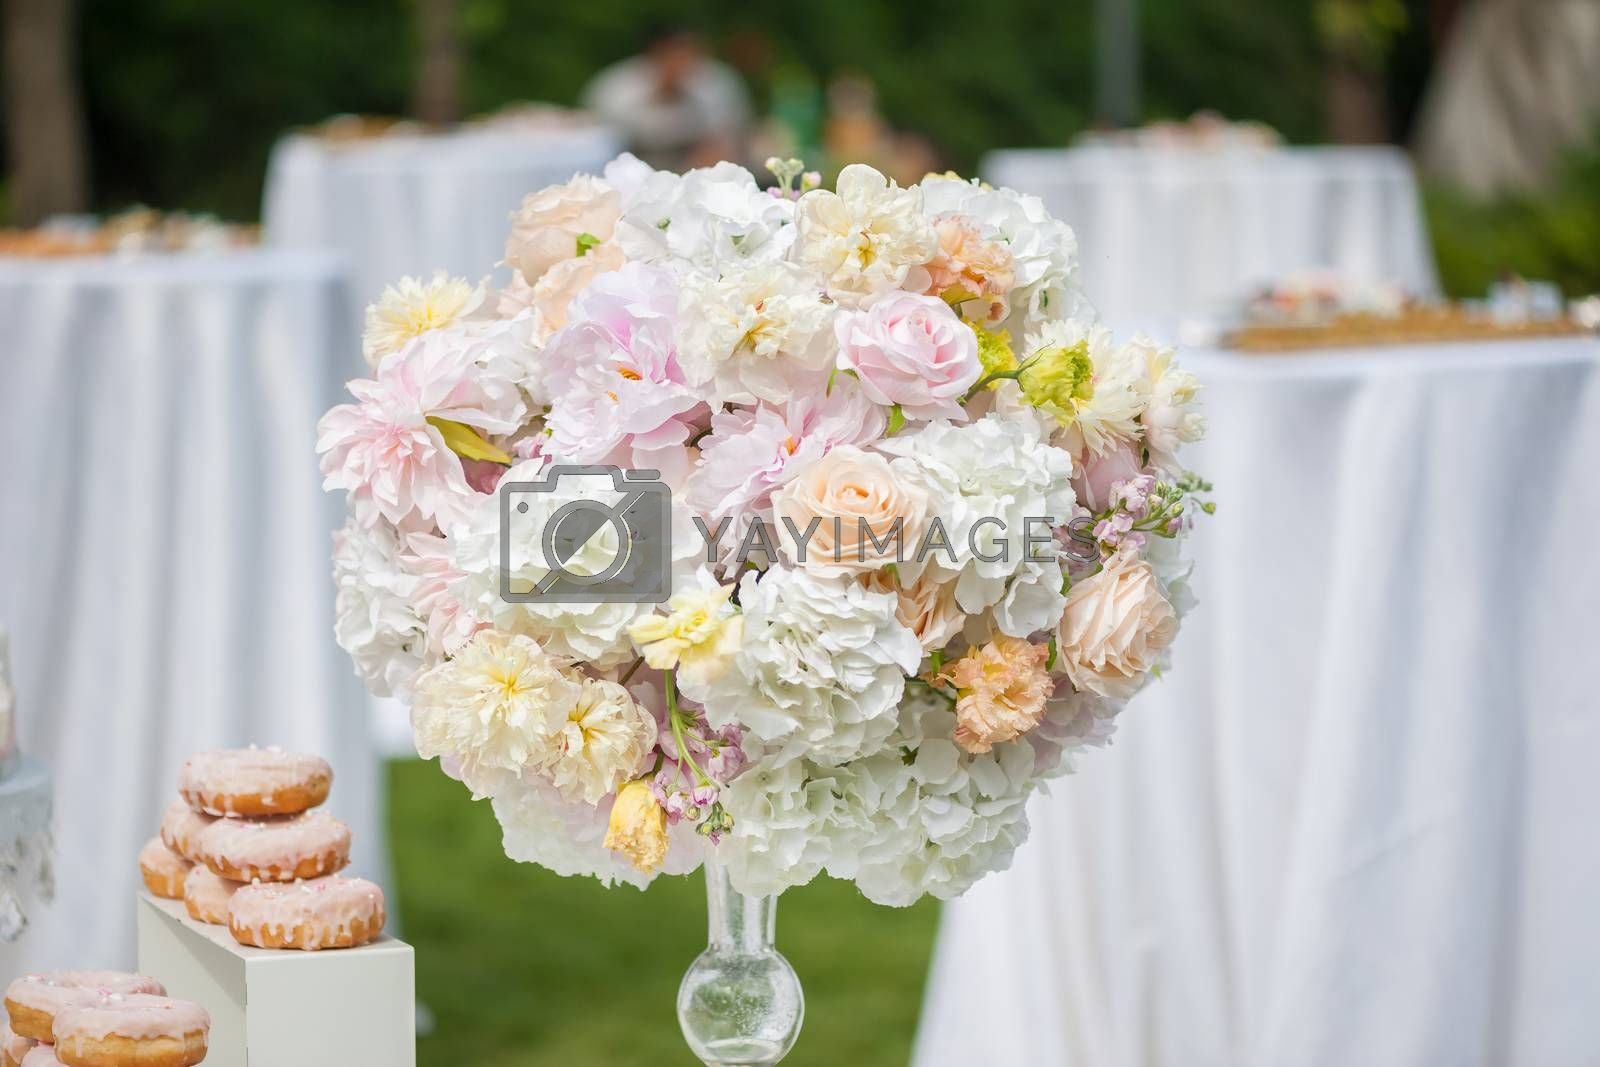 Wedding decoration with flowers and food on a table outdoors